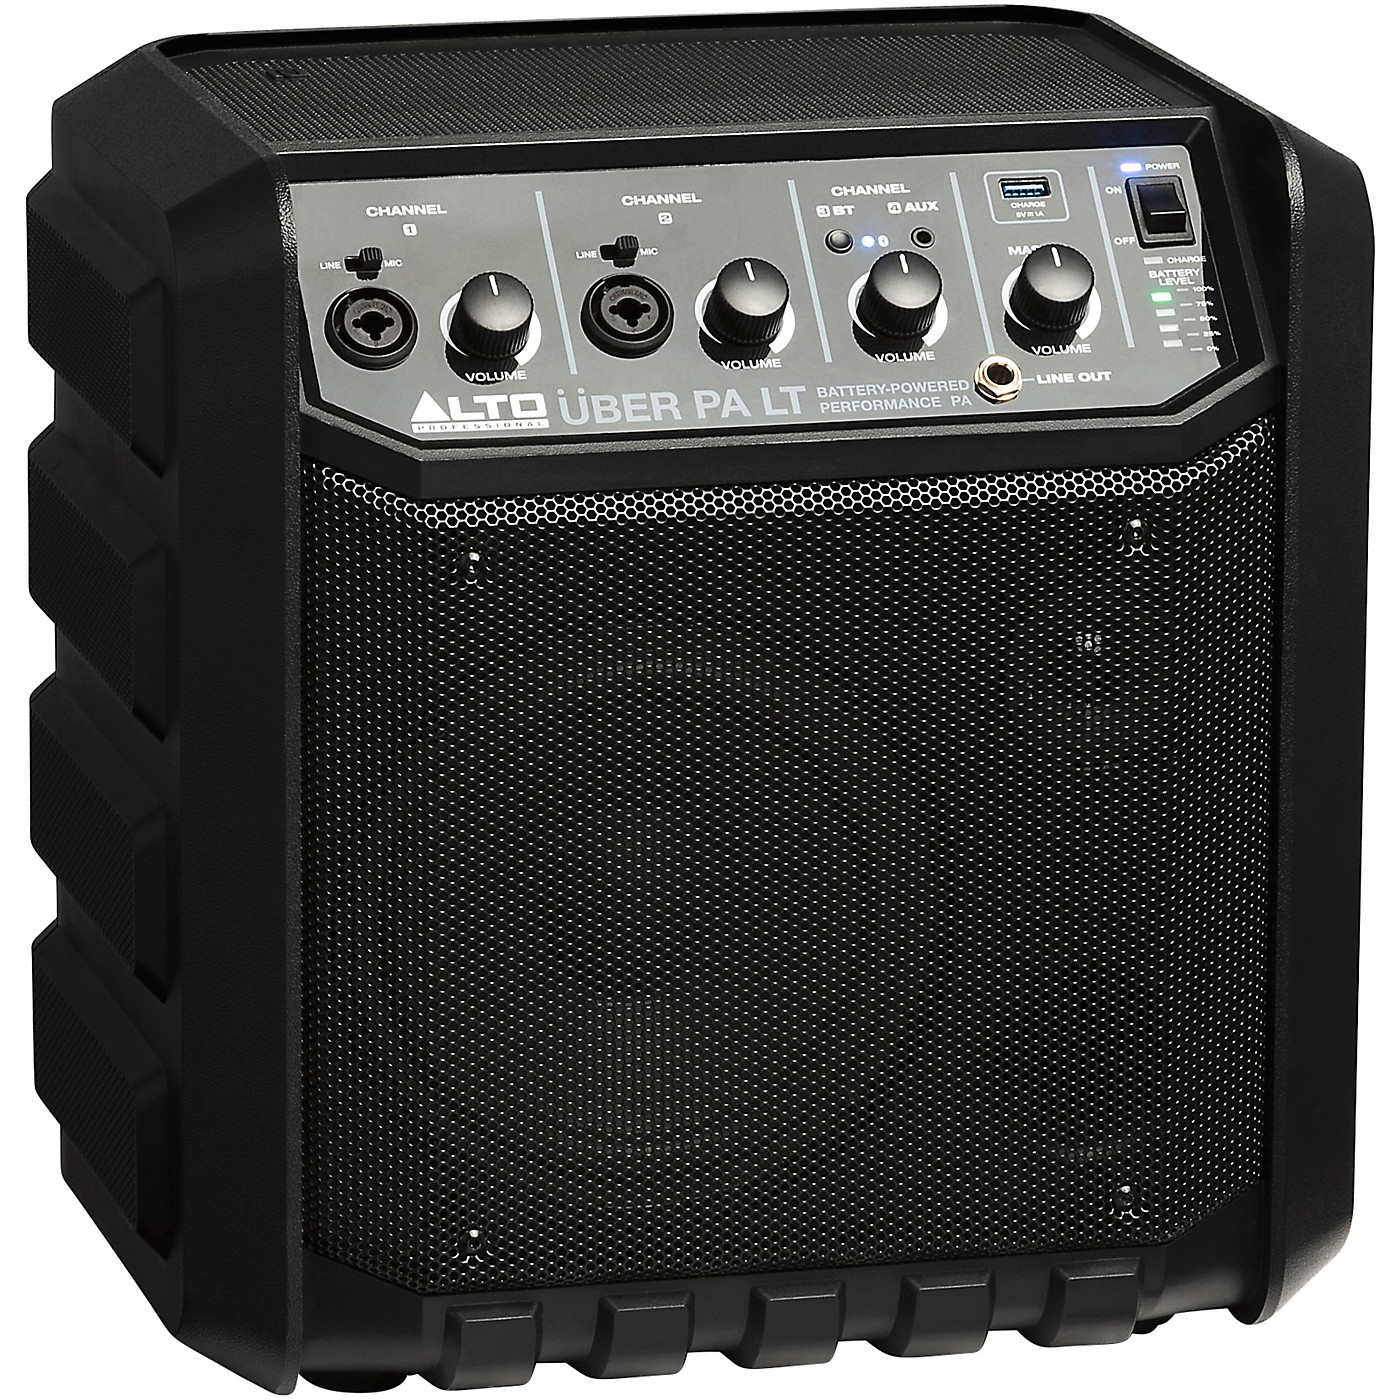 Alto Uber LT Portable PA Bluetooth Speaker With Rechargeable Battery thumbnail